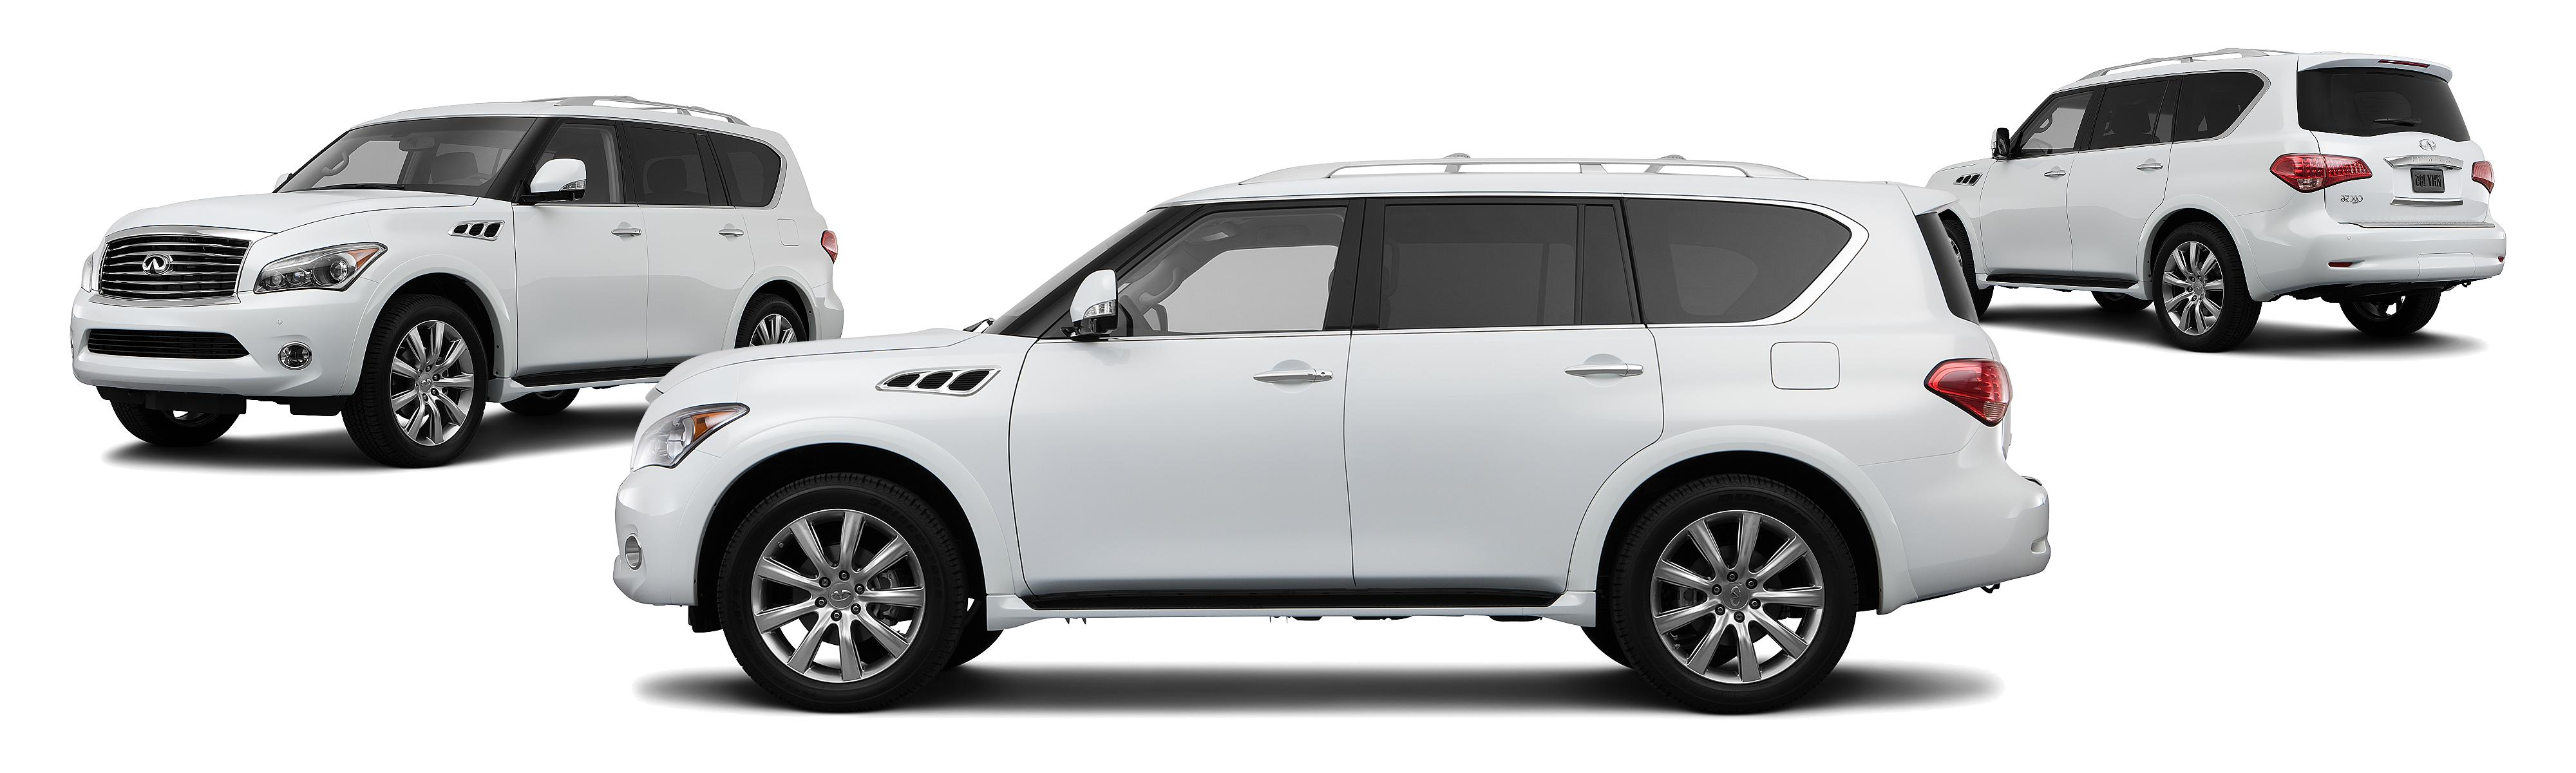 2005 infiniti qx56 white image collections hd cars wallpaper 2008 infiniti qx56 white images hd cars wallpaper 2013 infiniti qx56 white image collections hd cars vanachro Gallery